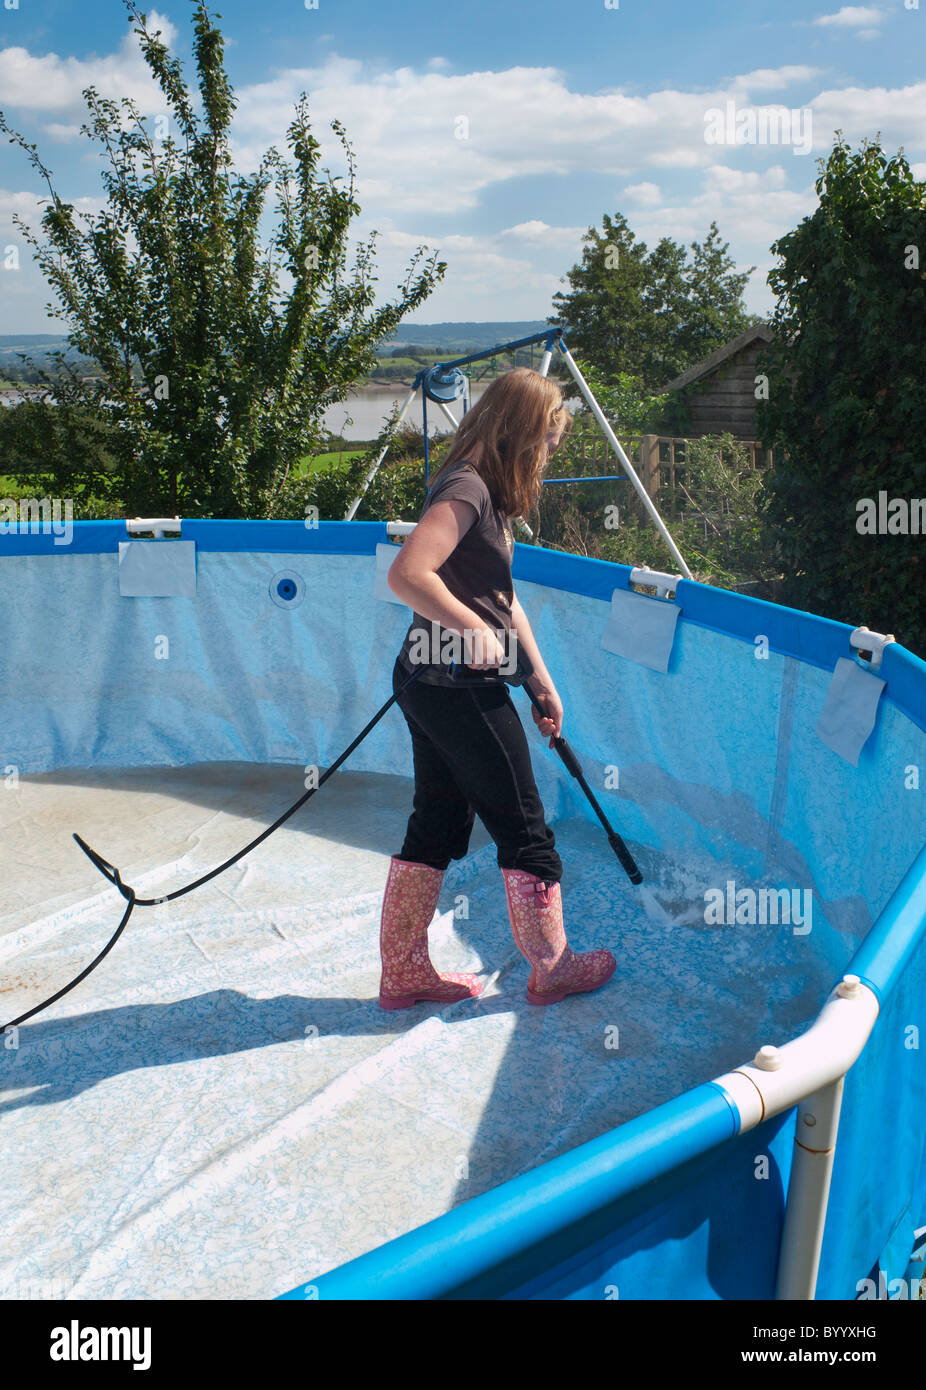 YOUNG GIRL CLEANING EMPTY COLLAPSIBLE SWIMMING POOL IN ...